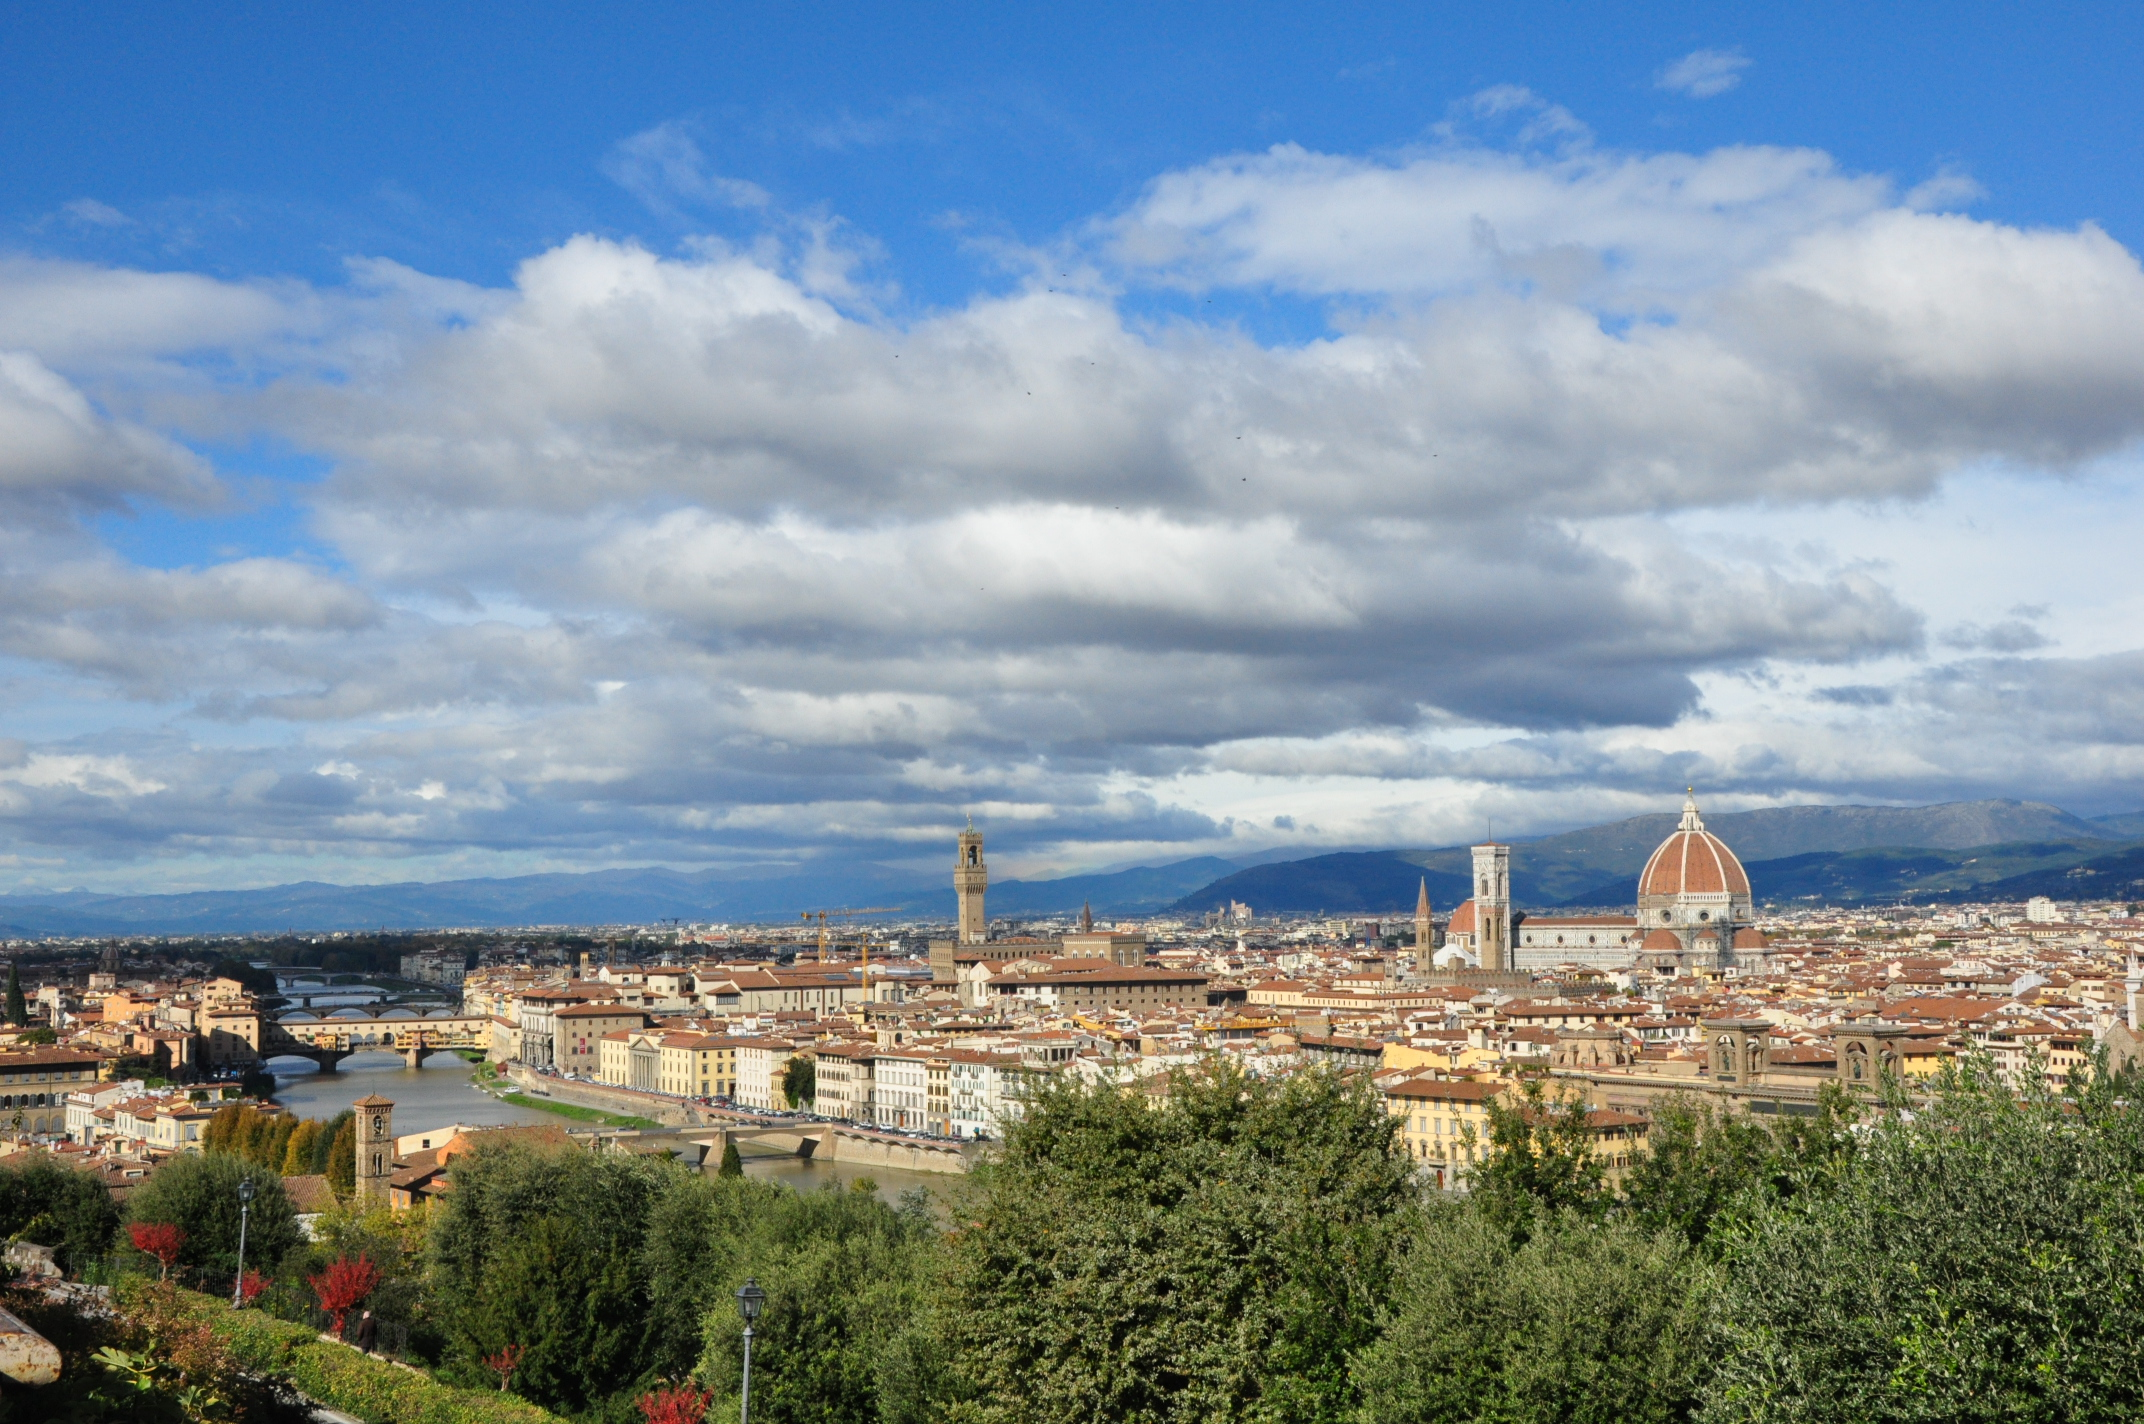 Italian Florence: 10 Top Photo Ops: Where To Find The Best Views Of Italy